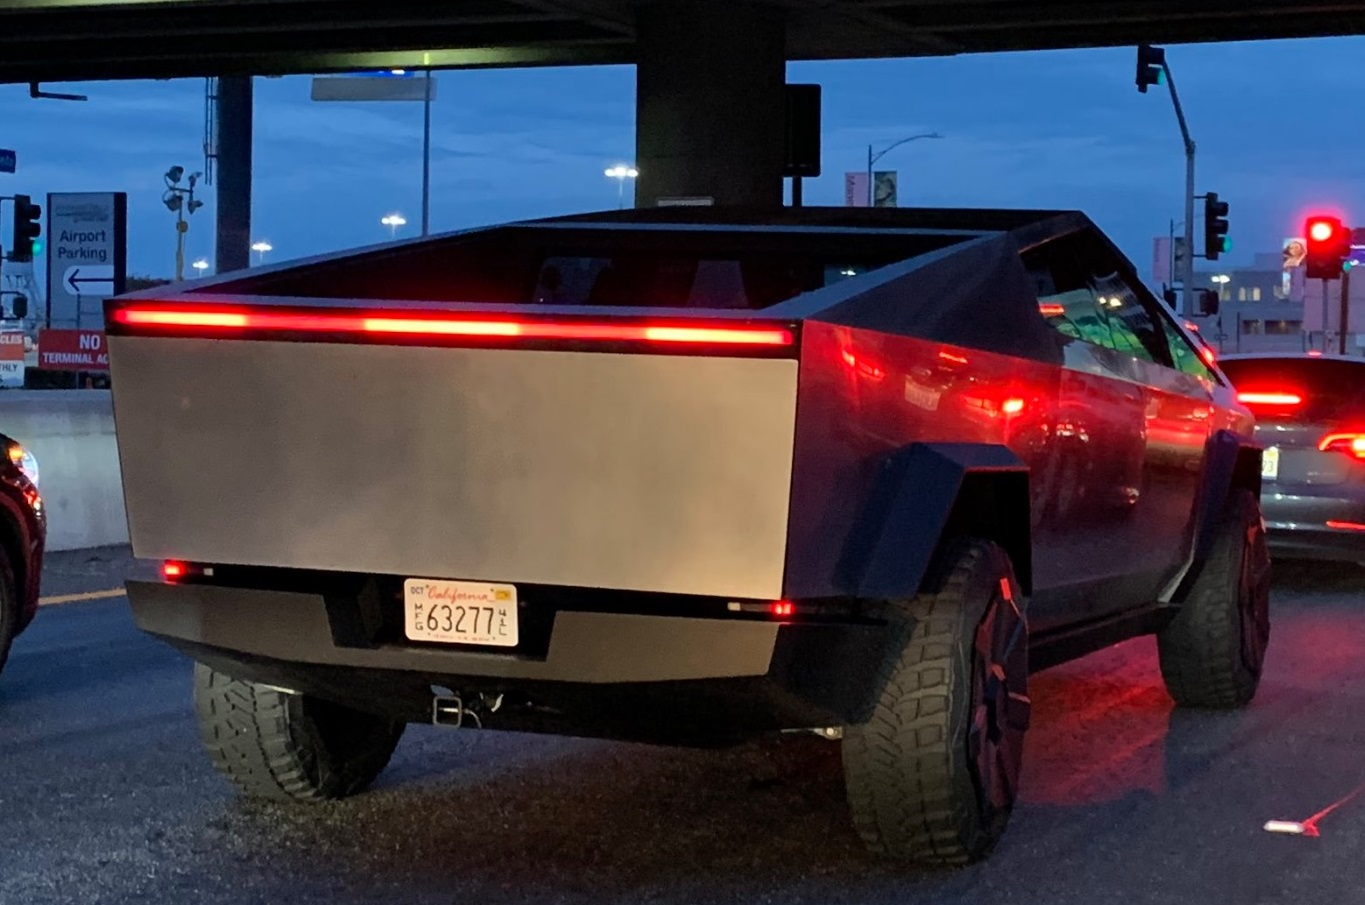 Tesla Cybertruck rolls through red light, reportedly with Musk driving